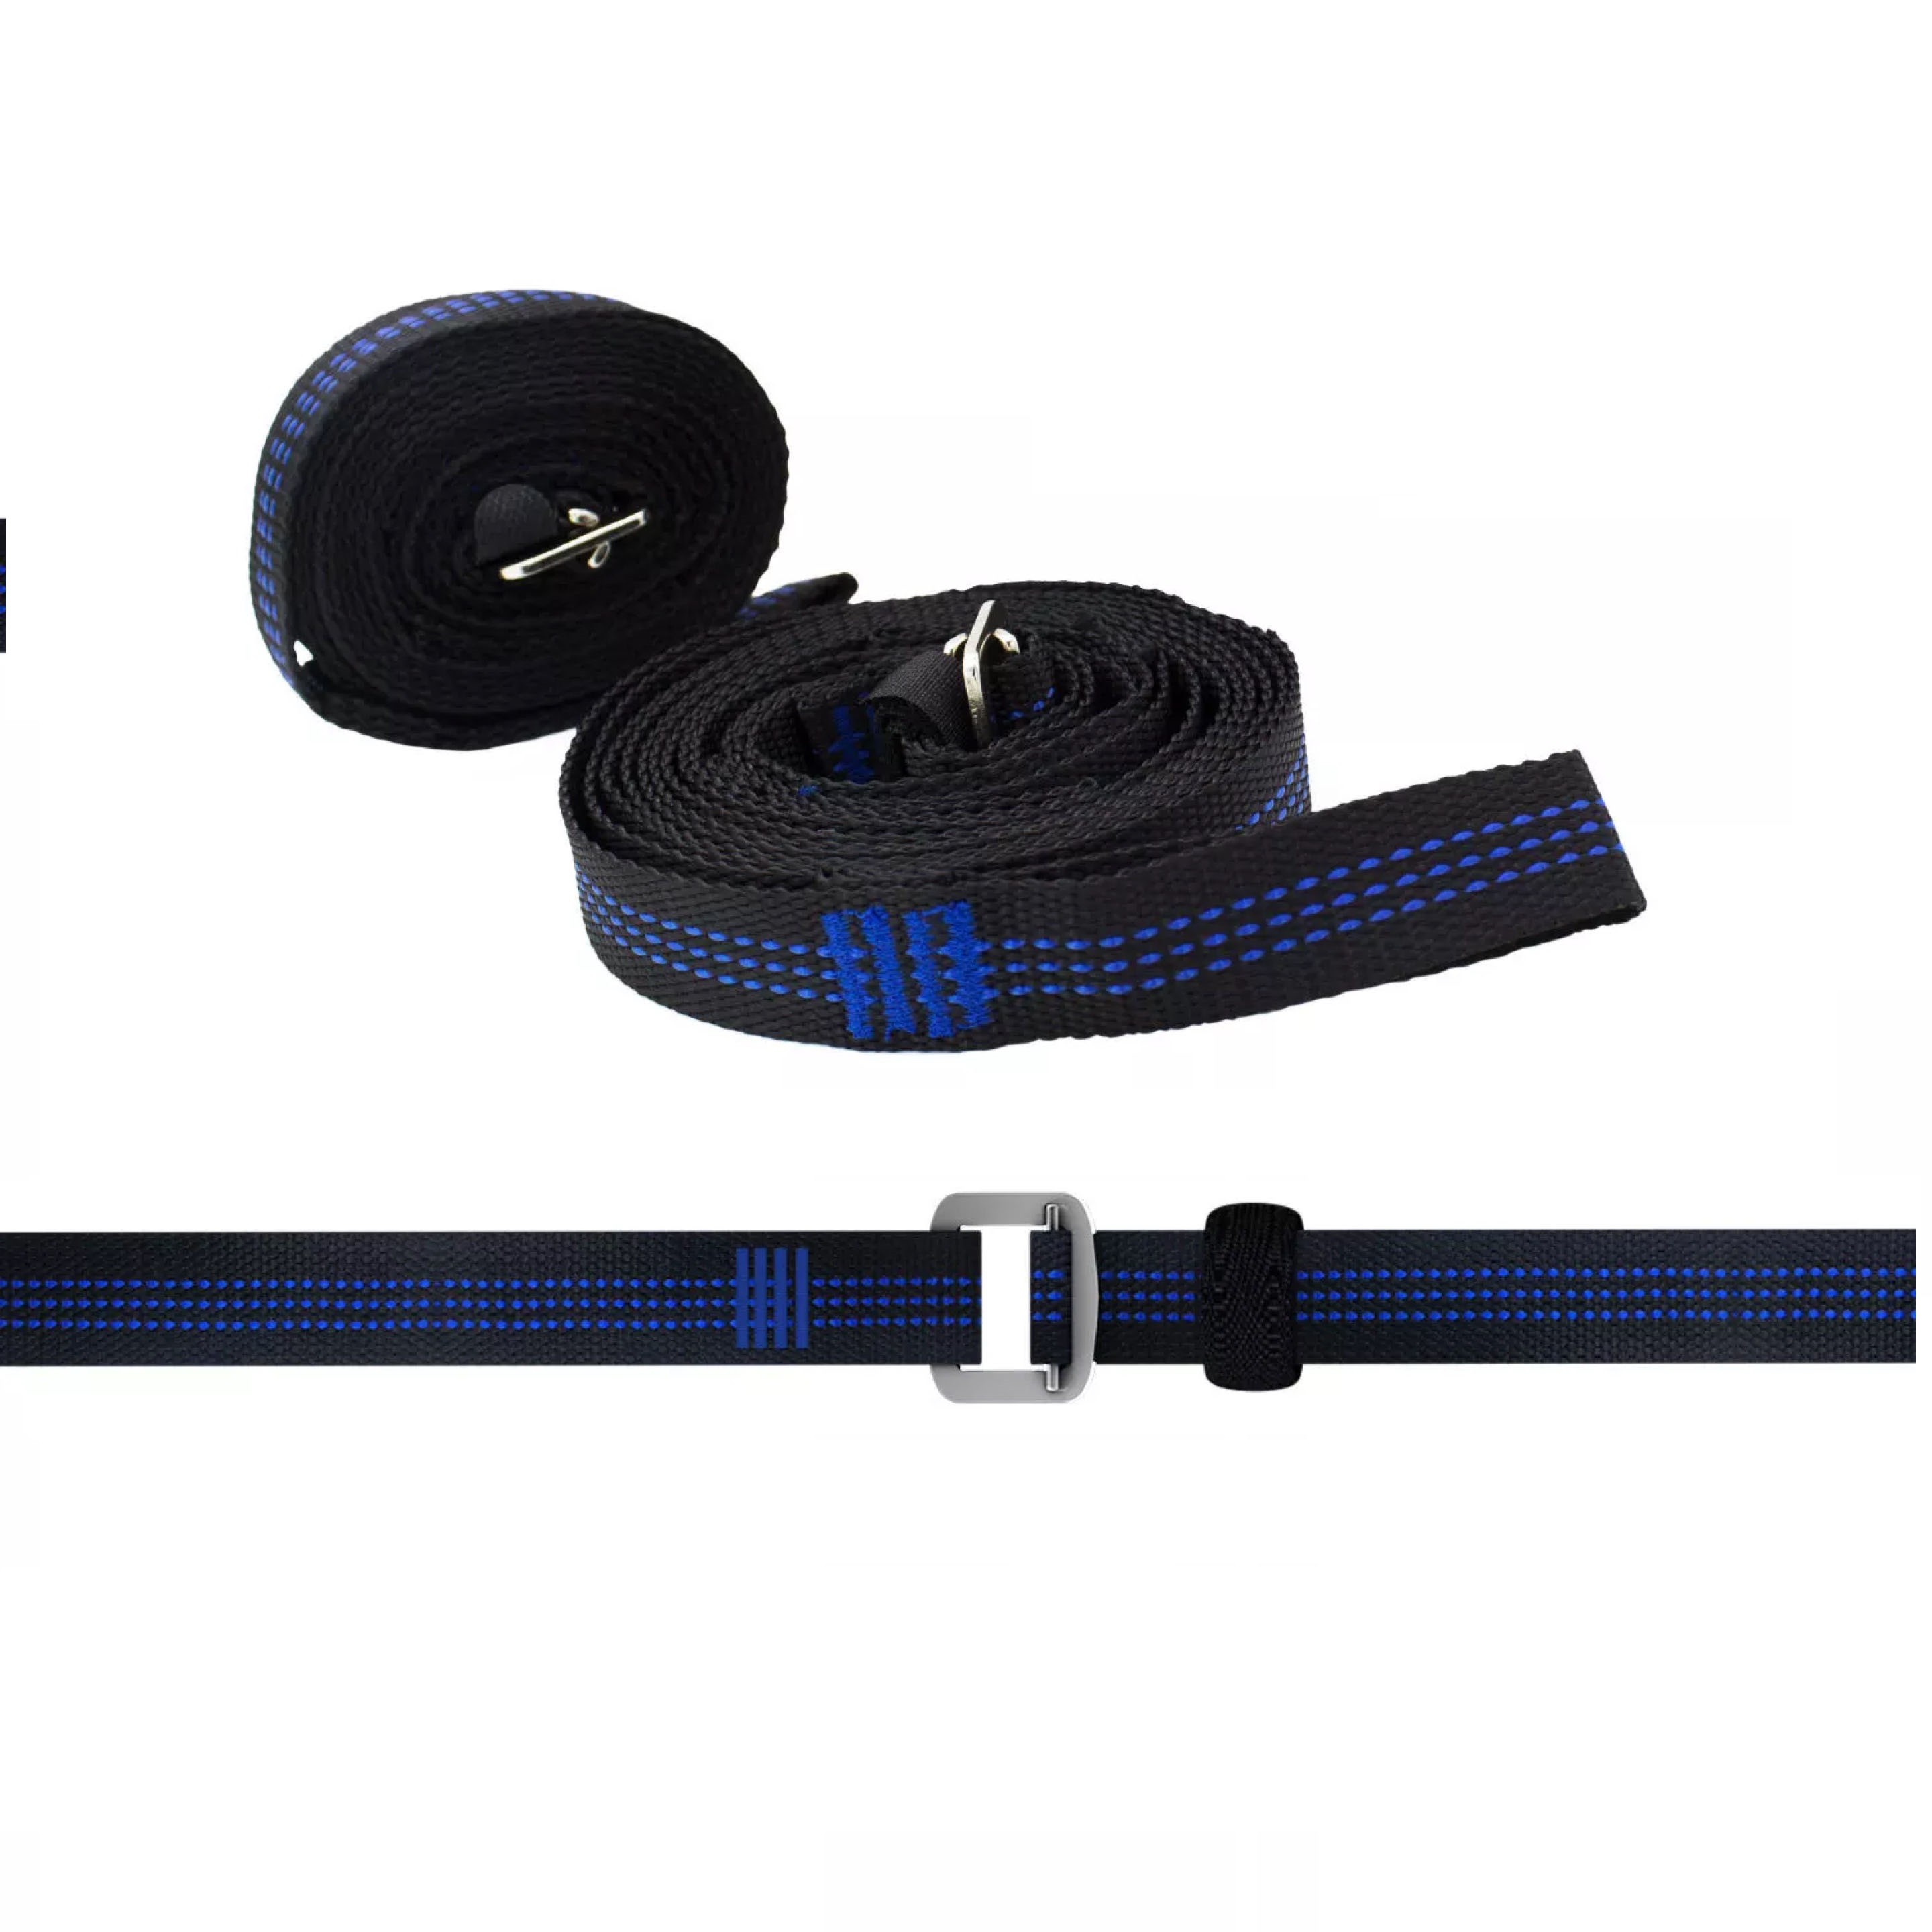 Custom No-stretch Polyester Adjustable Heavy Duty 850lbs Straps Hammock Straps With Adjustable Cinch Buckles